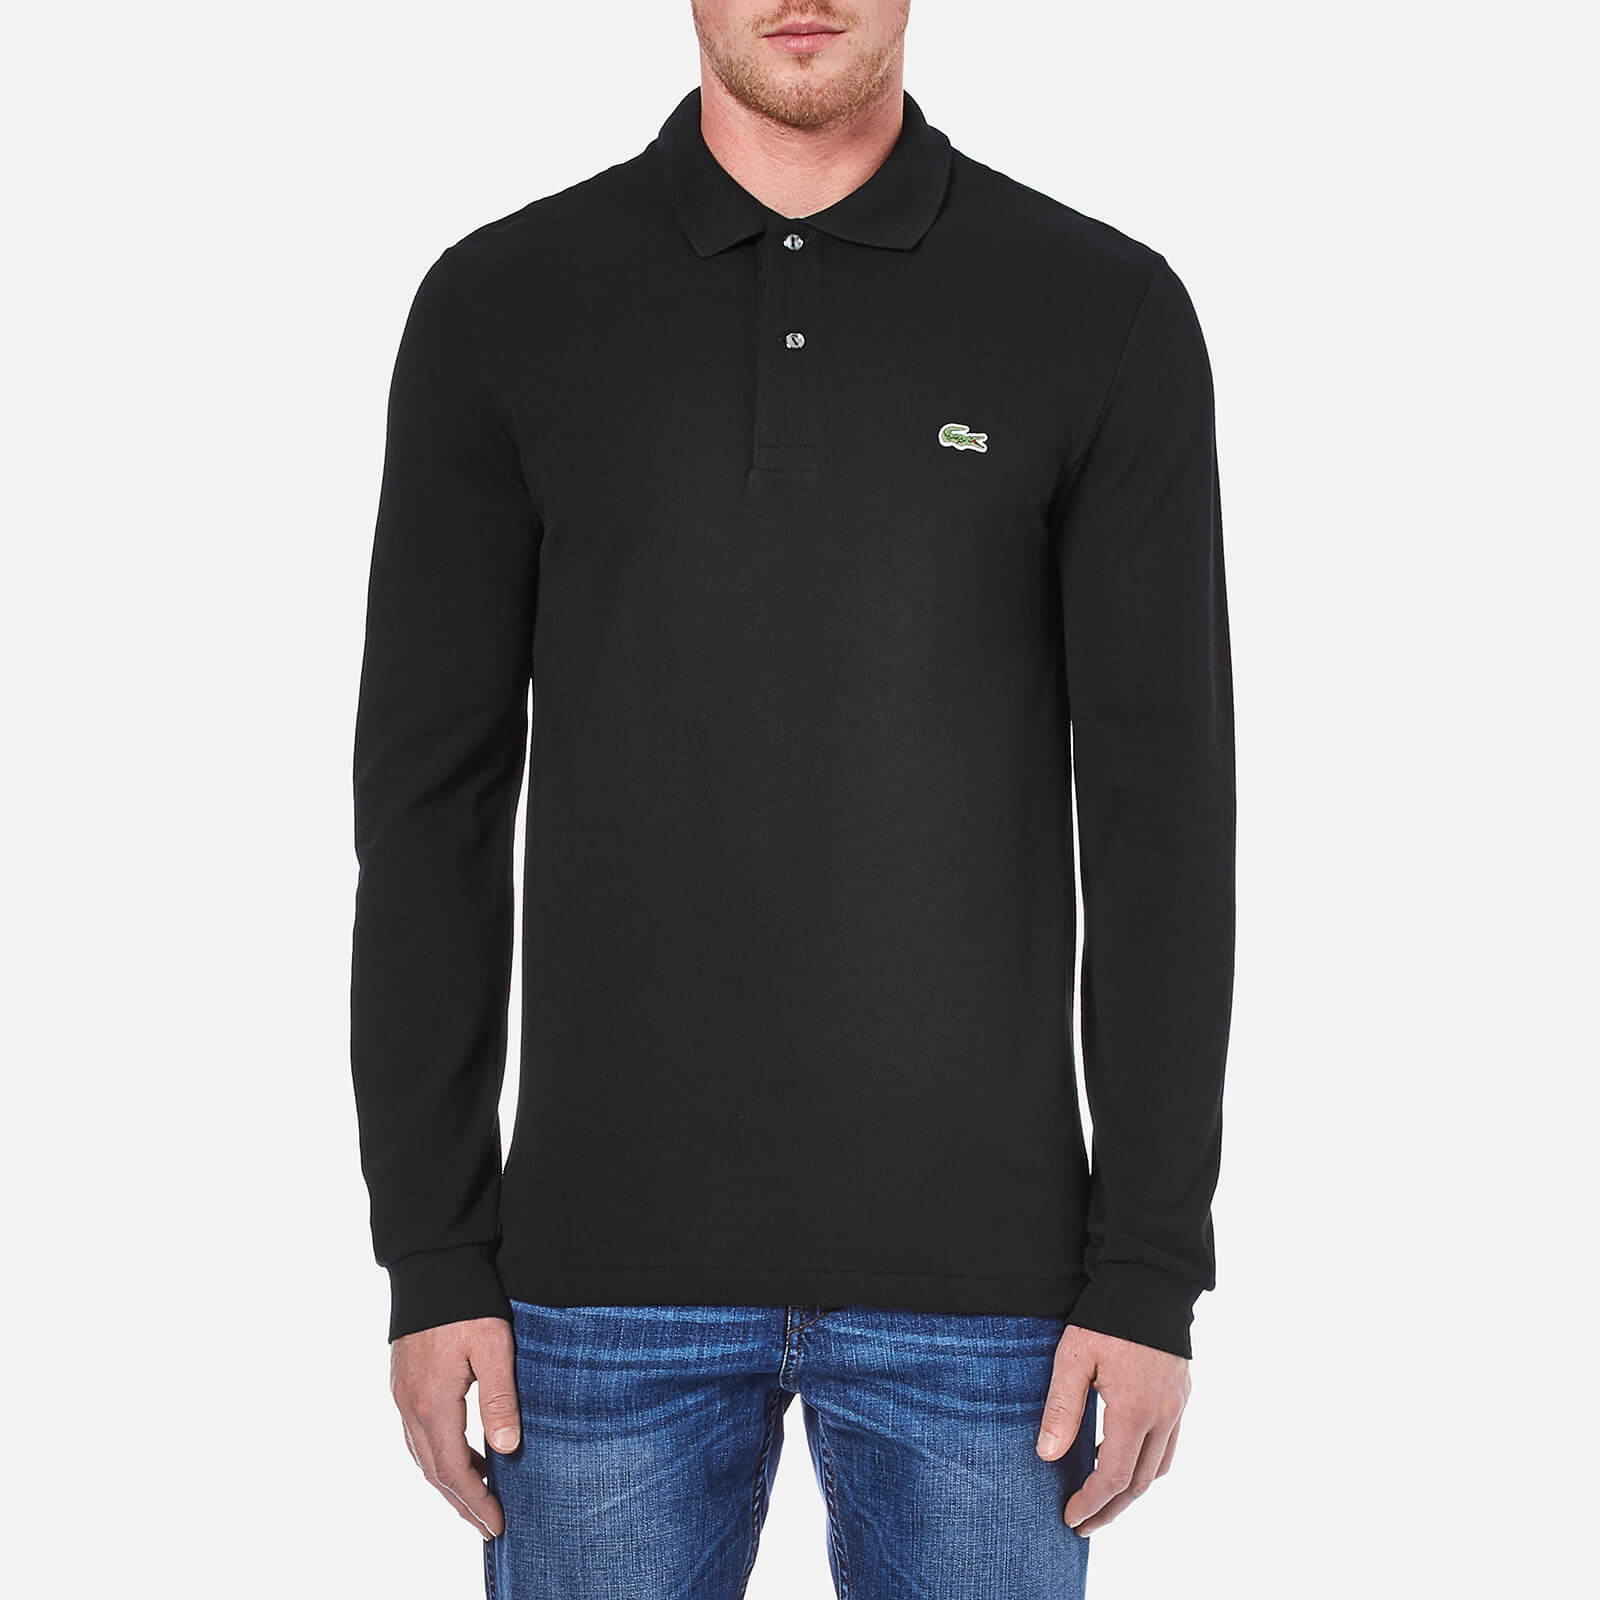 ebc8c3a3 Lacoste Men's Long Sleeve Polo Shirt - Black